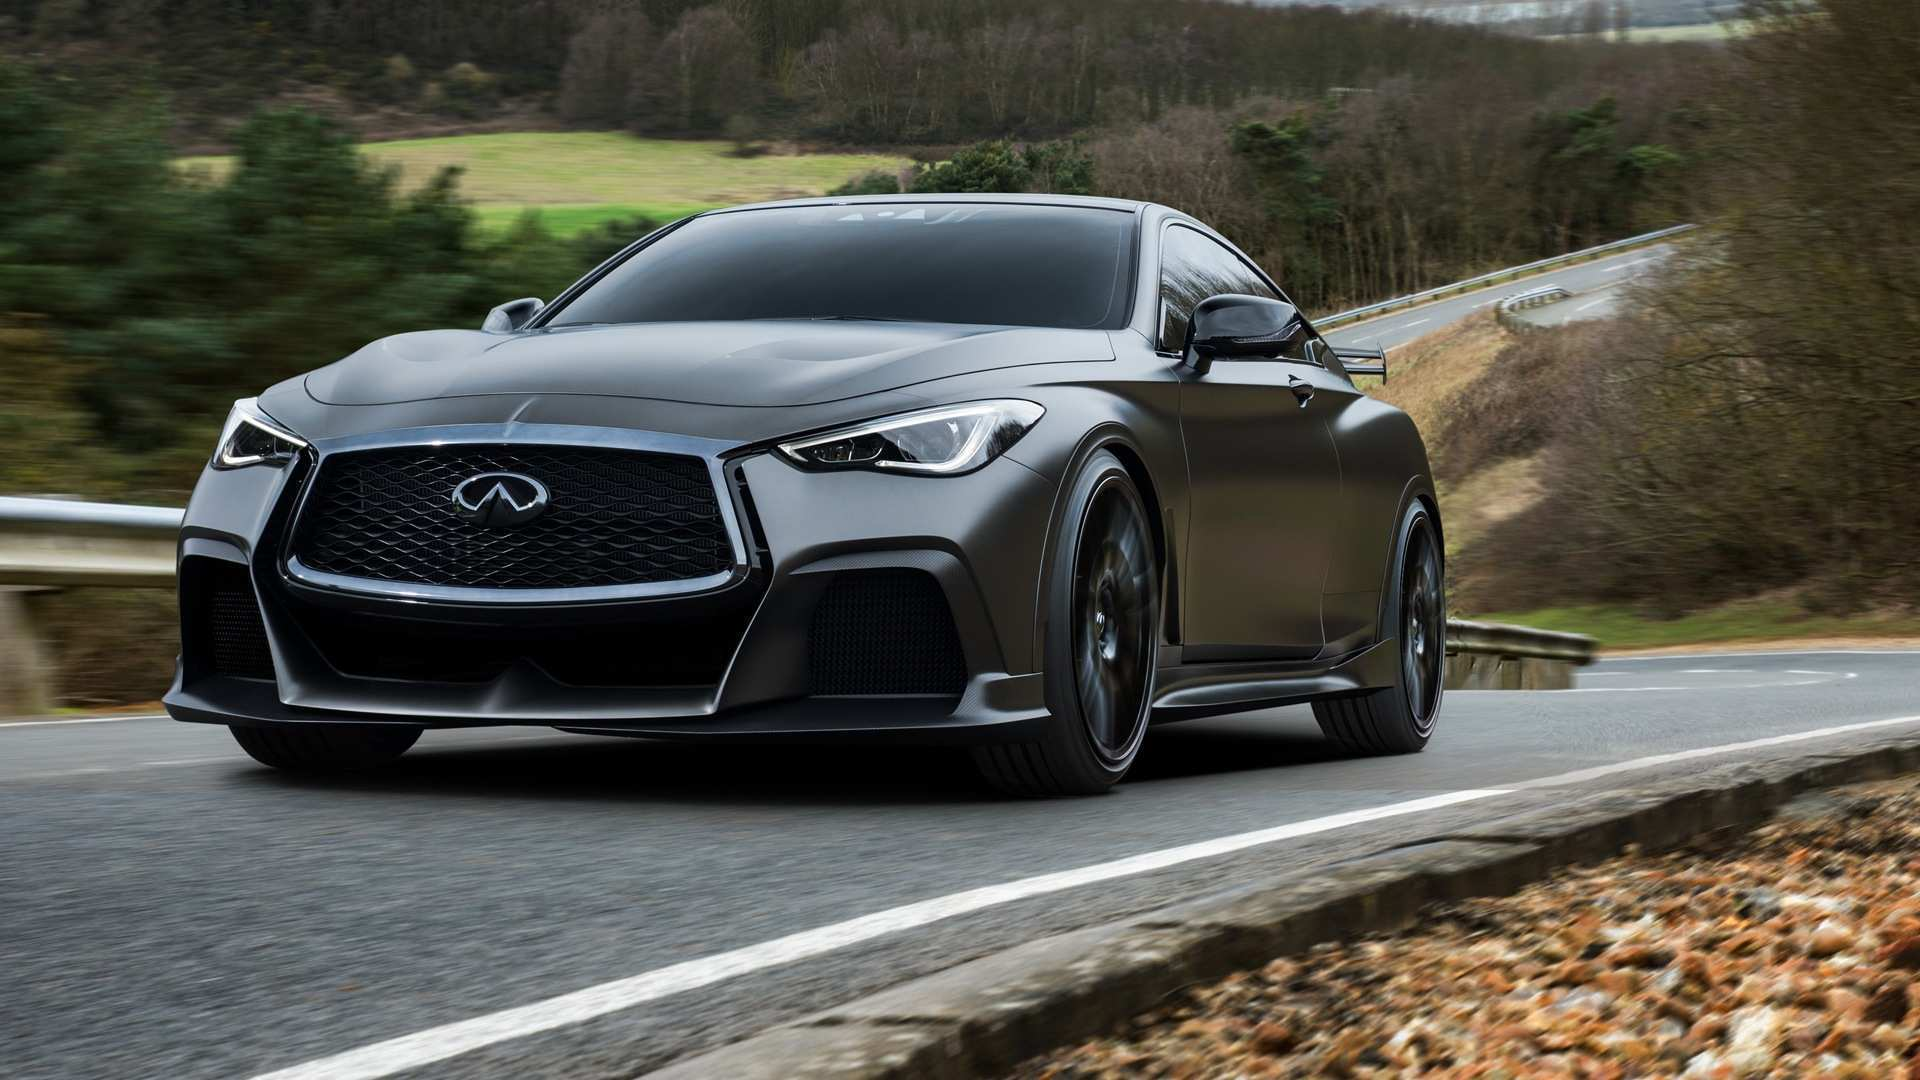 49 All New Infiniti Q50 For 2020 Reviews